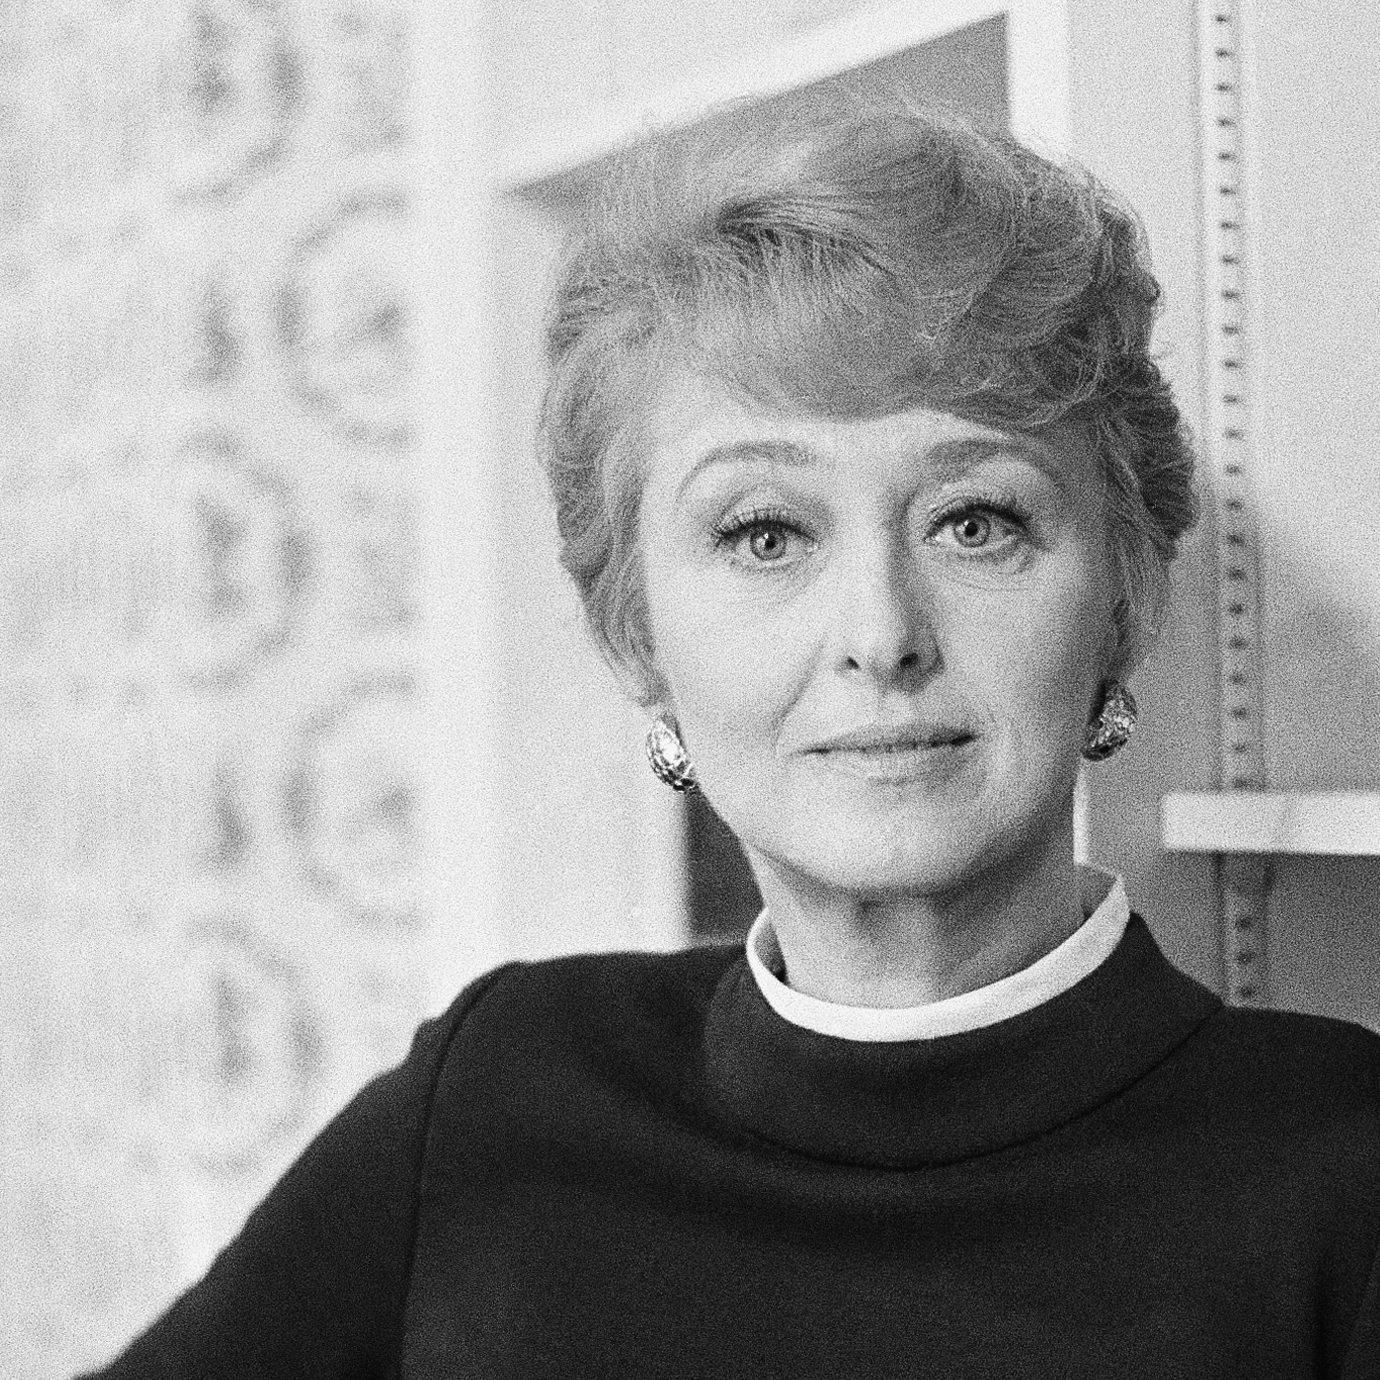 Academy Award-winning actress Celeste Holm was best known for roles in Gentleman's Agreement, All About Eve and Oklahoma!